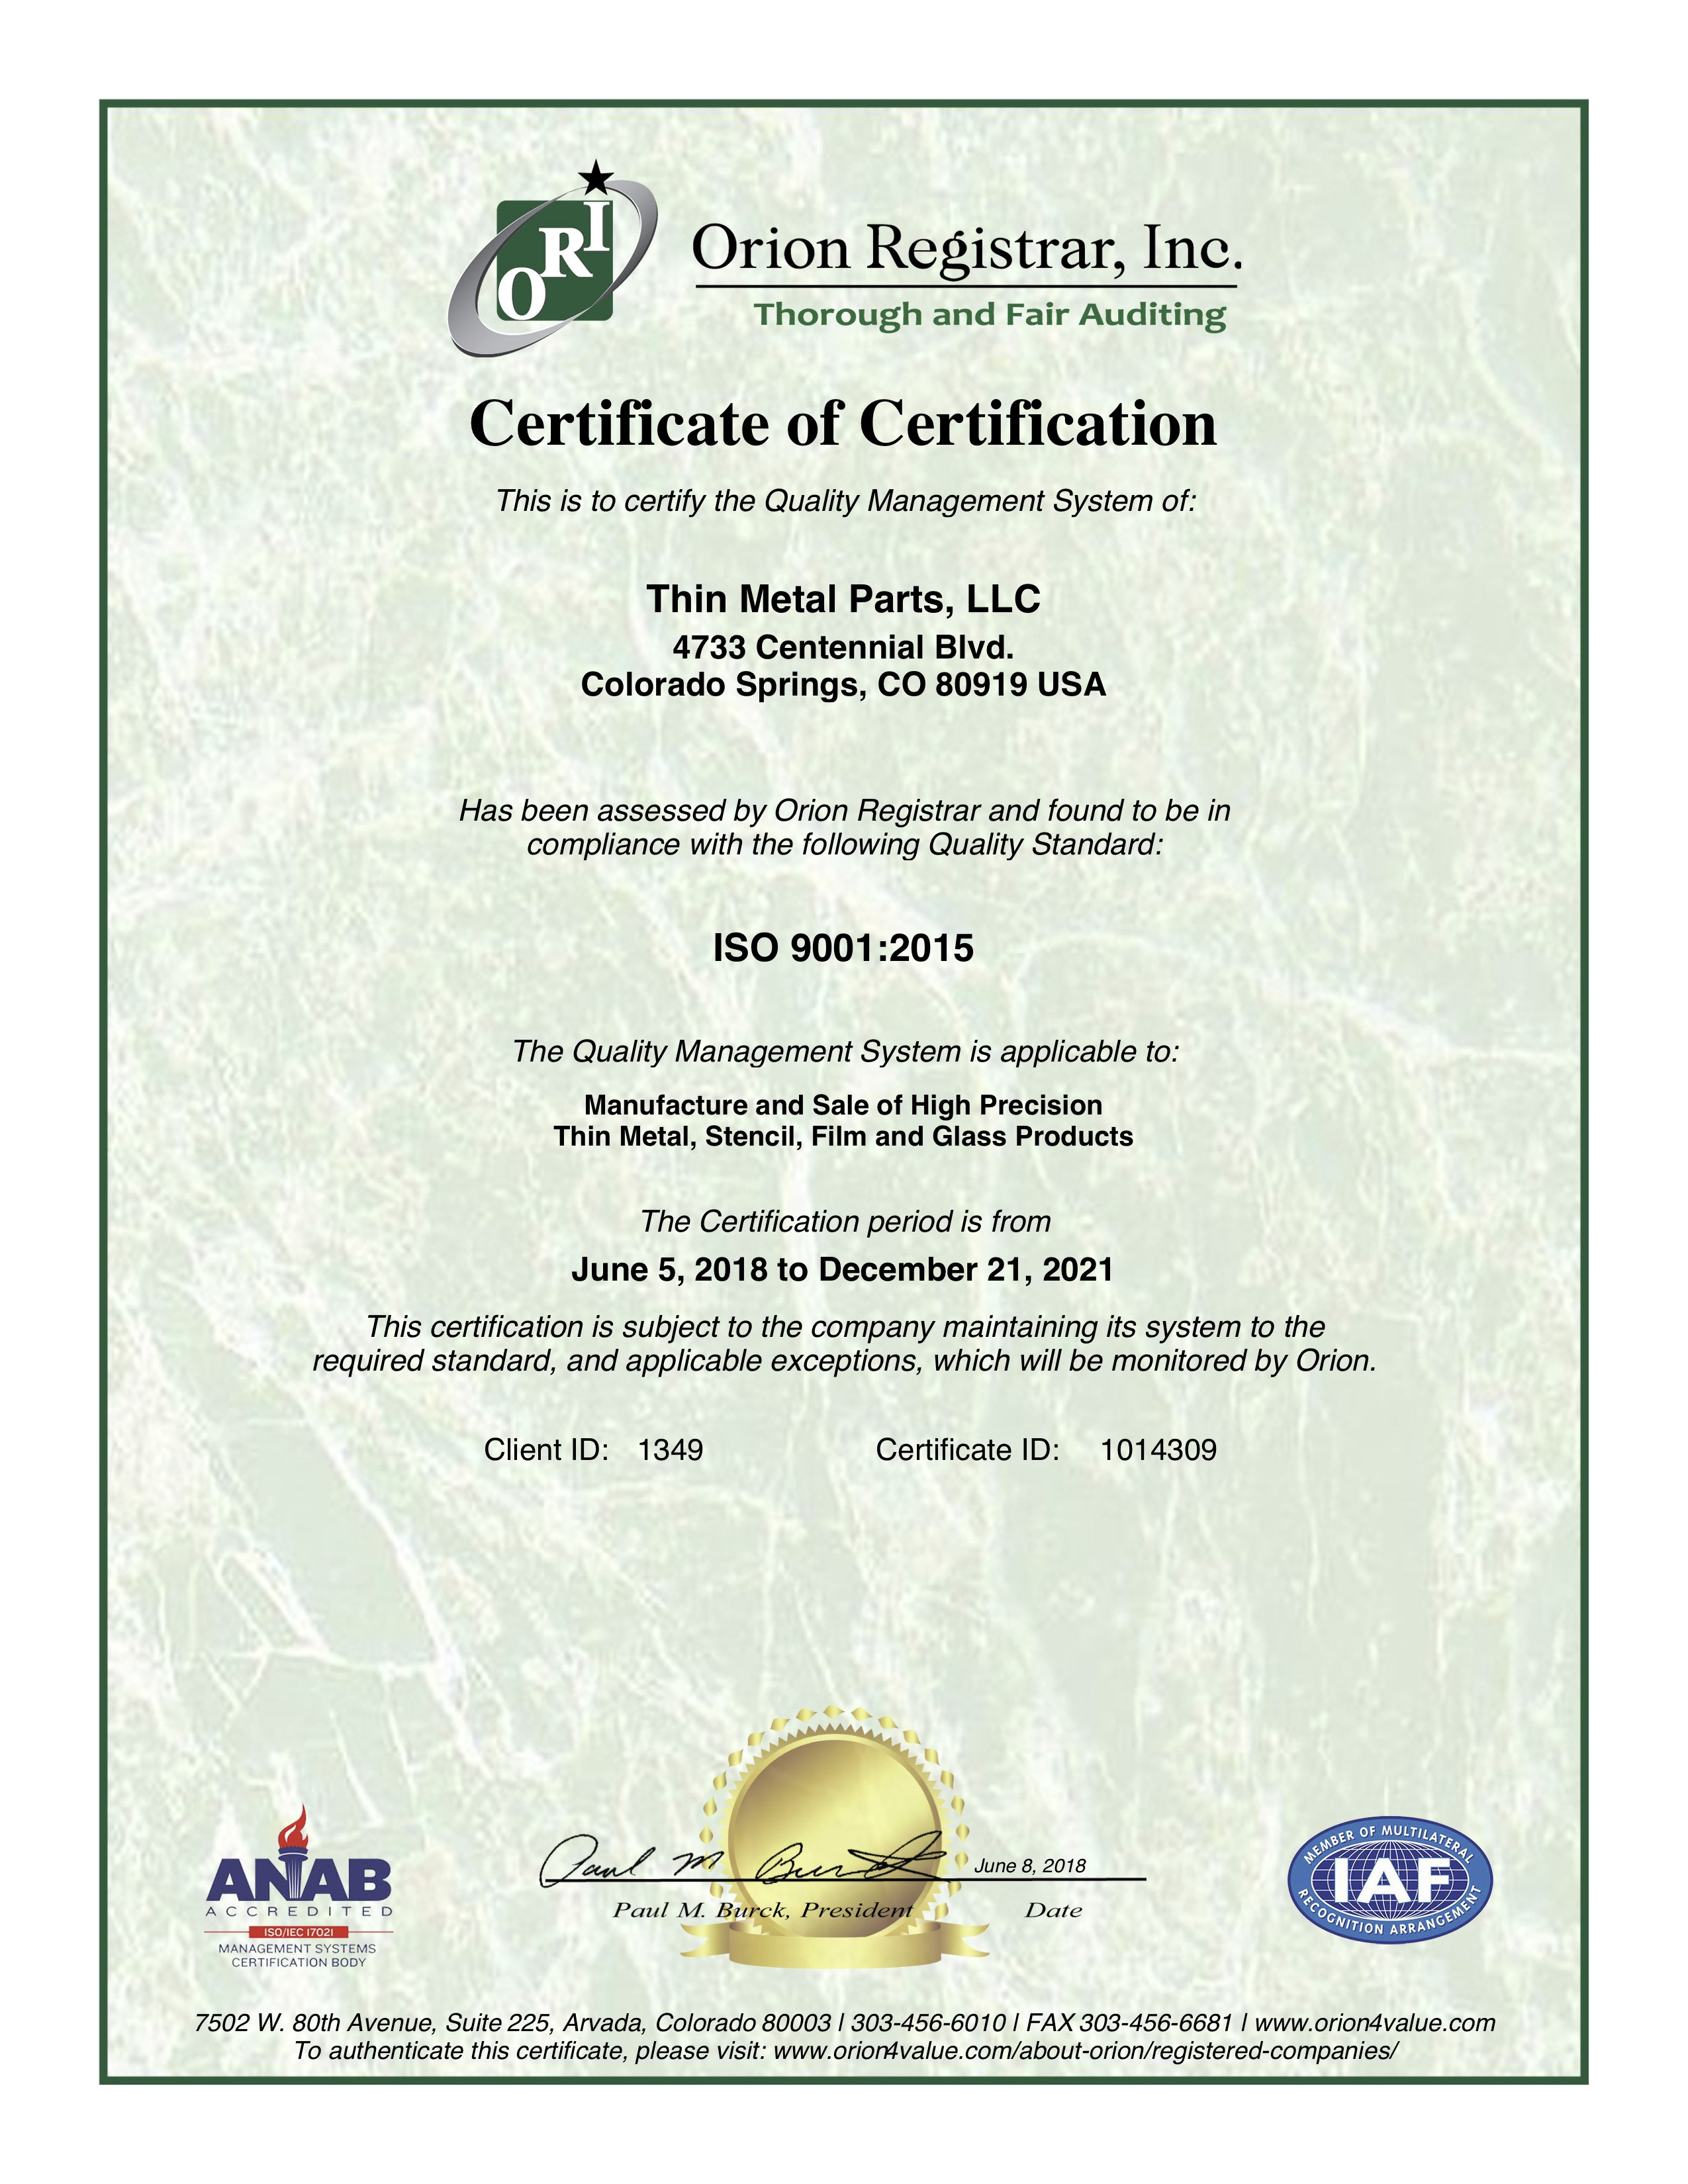 Thin Metal Parts ISO 9001 Certificate for Quality Control